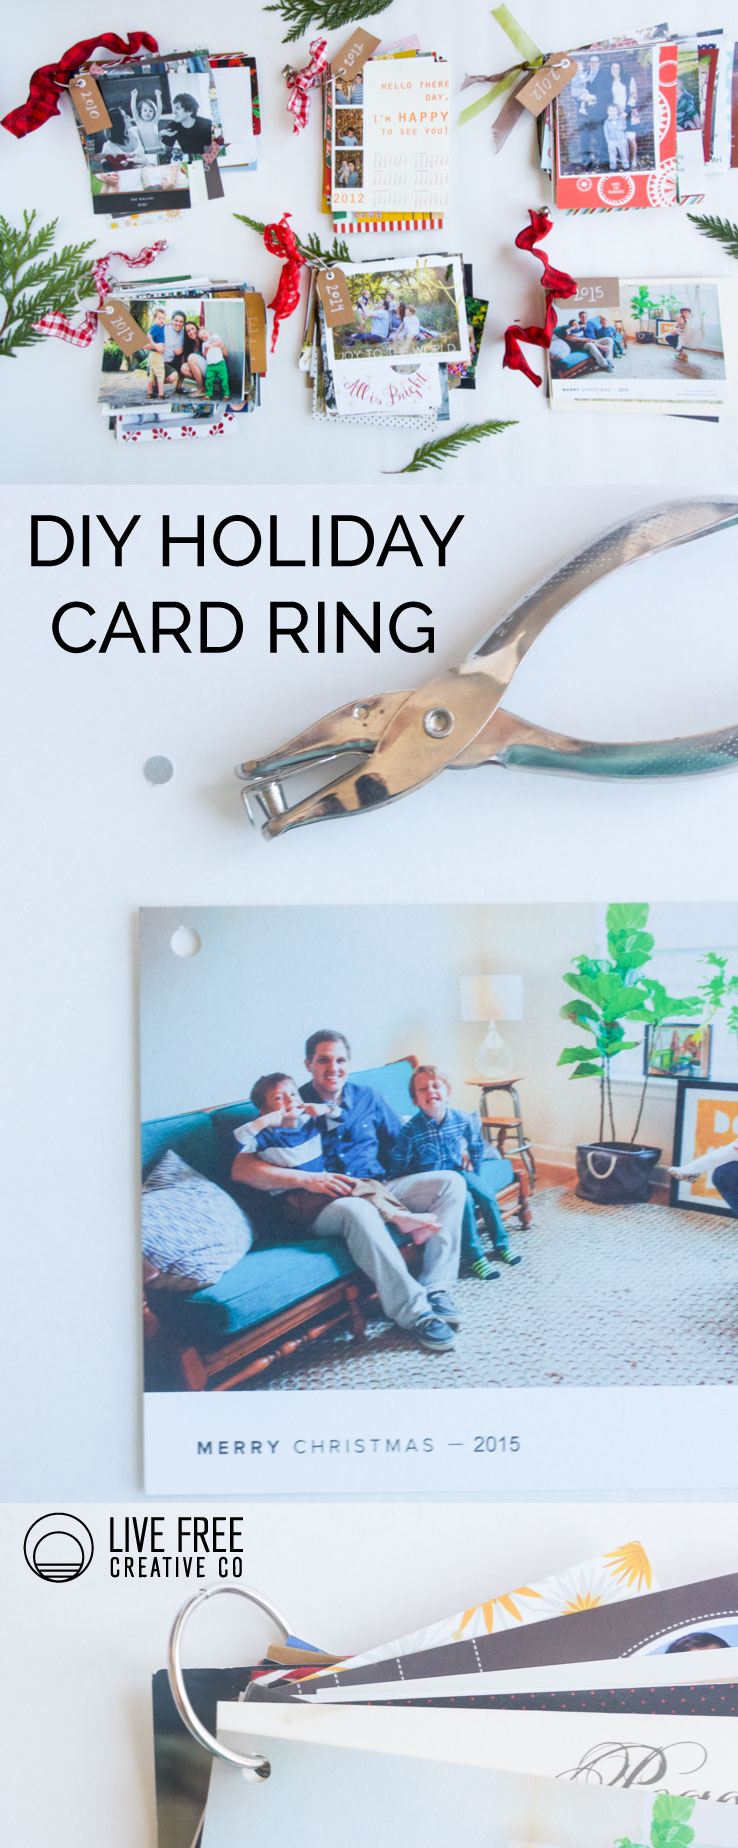 DIY Holiday Card Ring | Live Free Creative Co